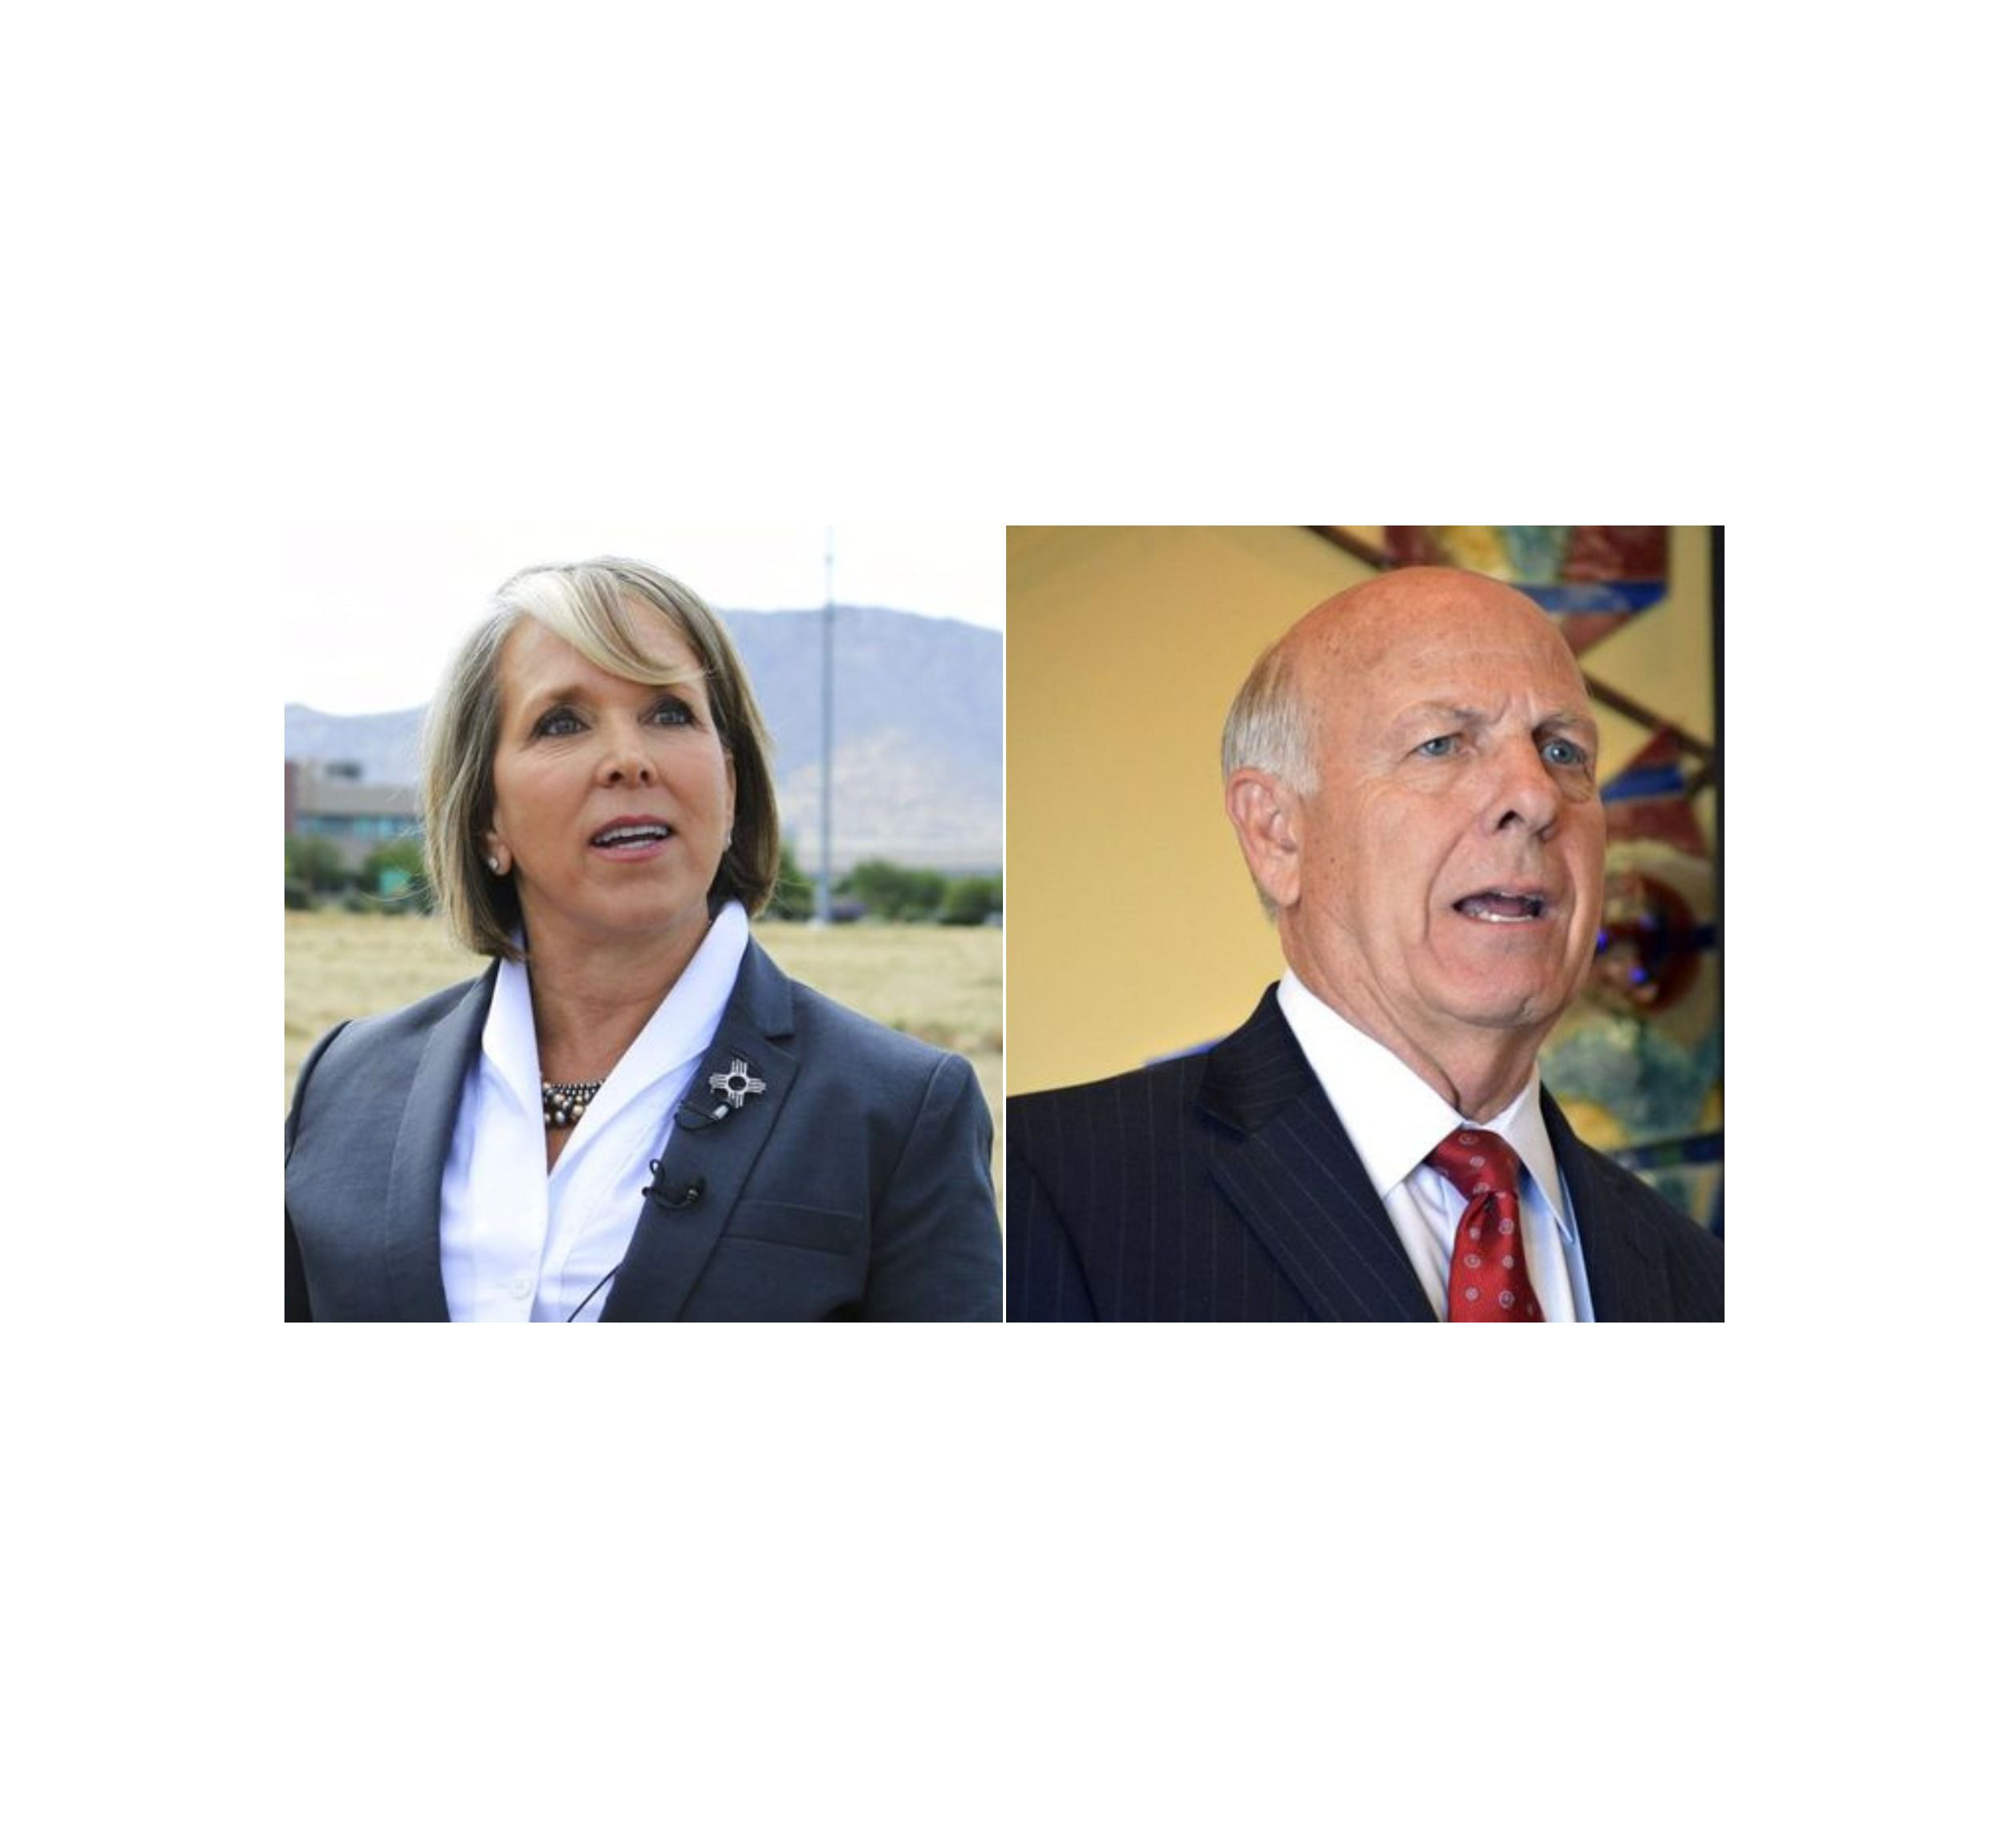 Michelle Lujan Grisham and Steve Pearce clash during debate | Las Cruces Sun